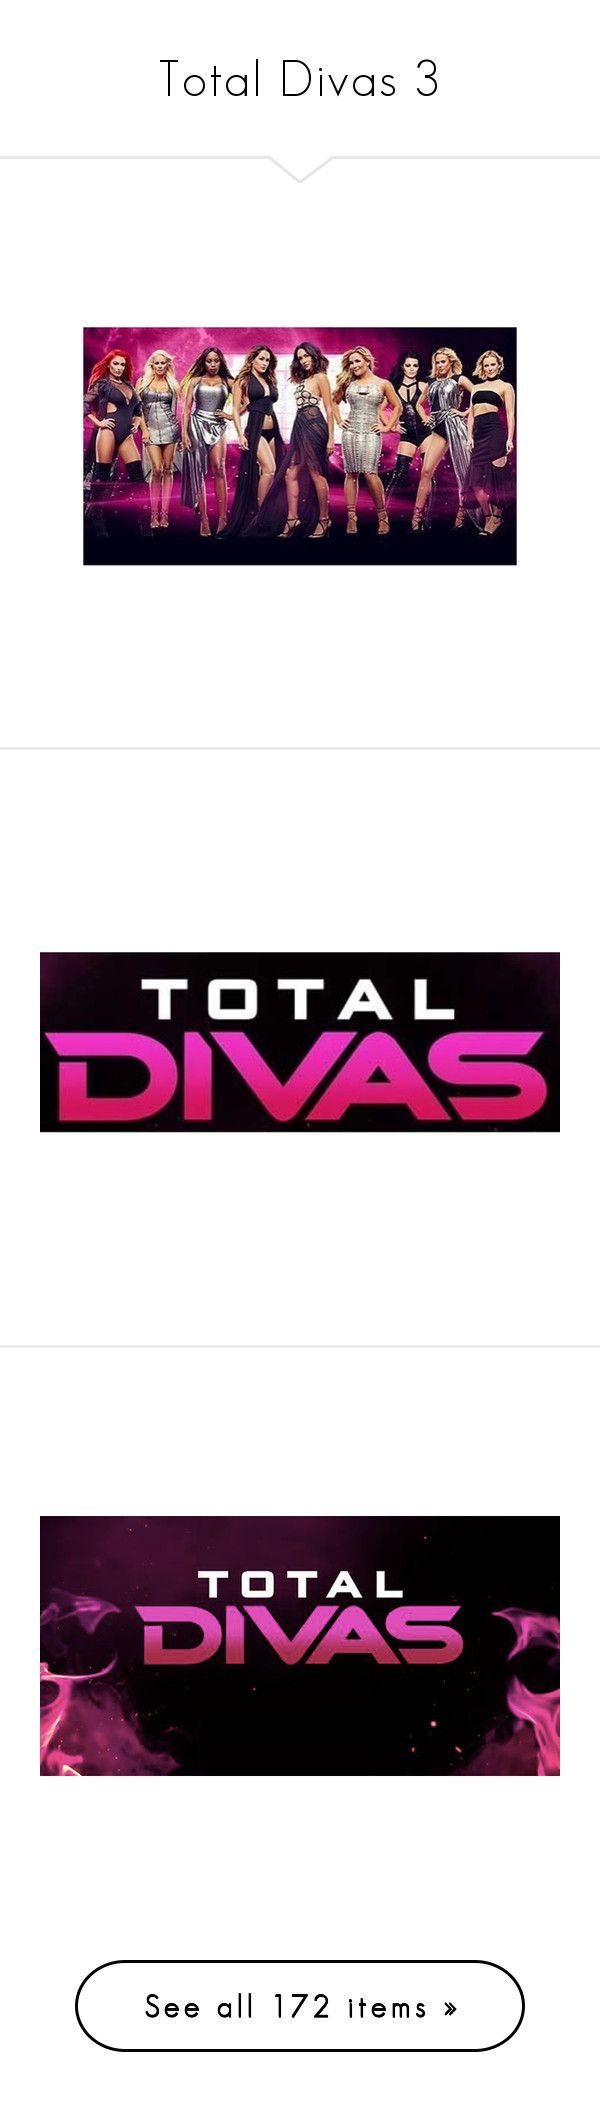 """""""Total Divas 3"""" by wwetnagirl ❤ liked on Polyvore featuring jewelry, home, home decor, frames, total divas, wwe, paige and juicy couture"""